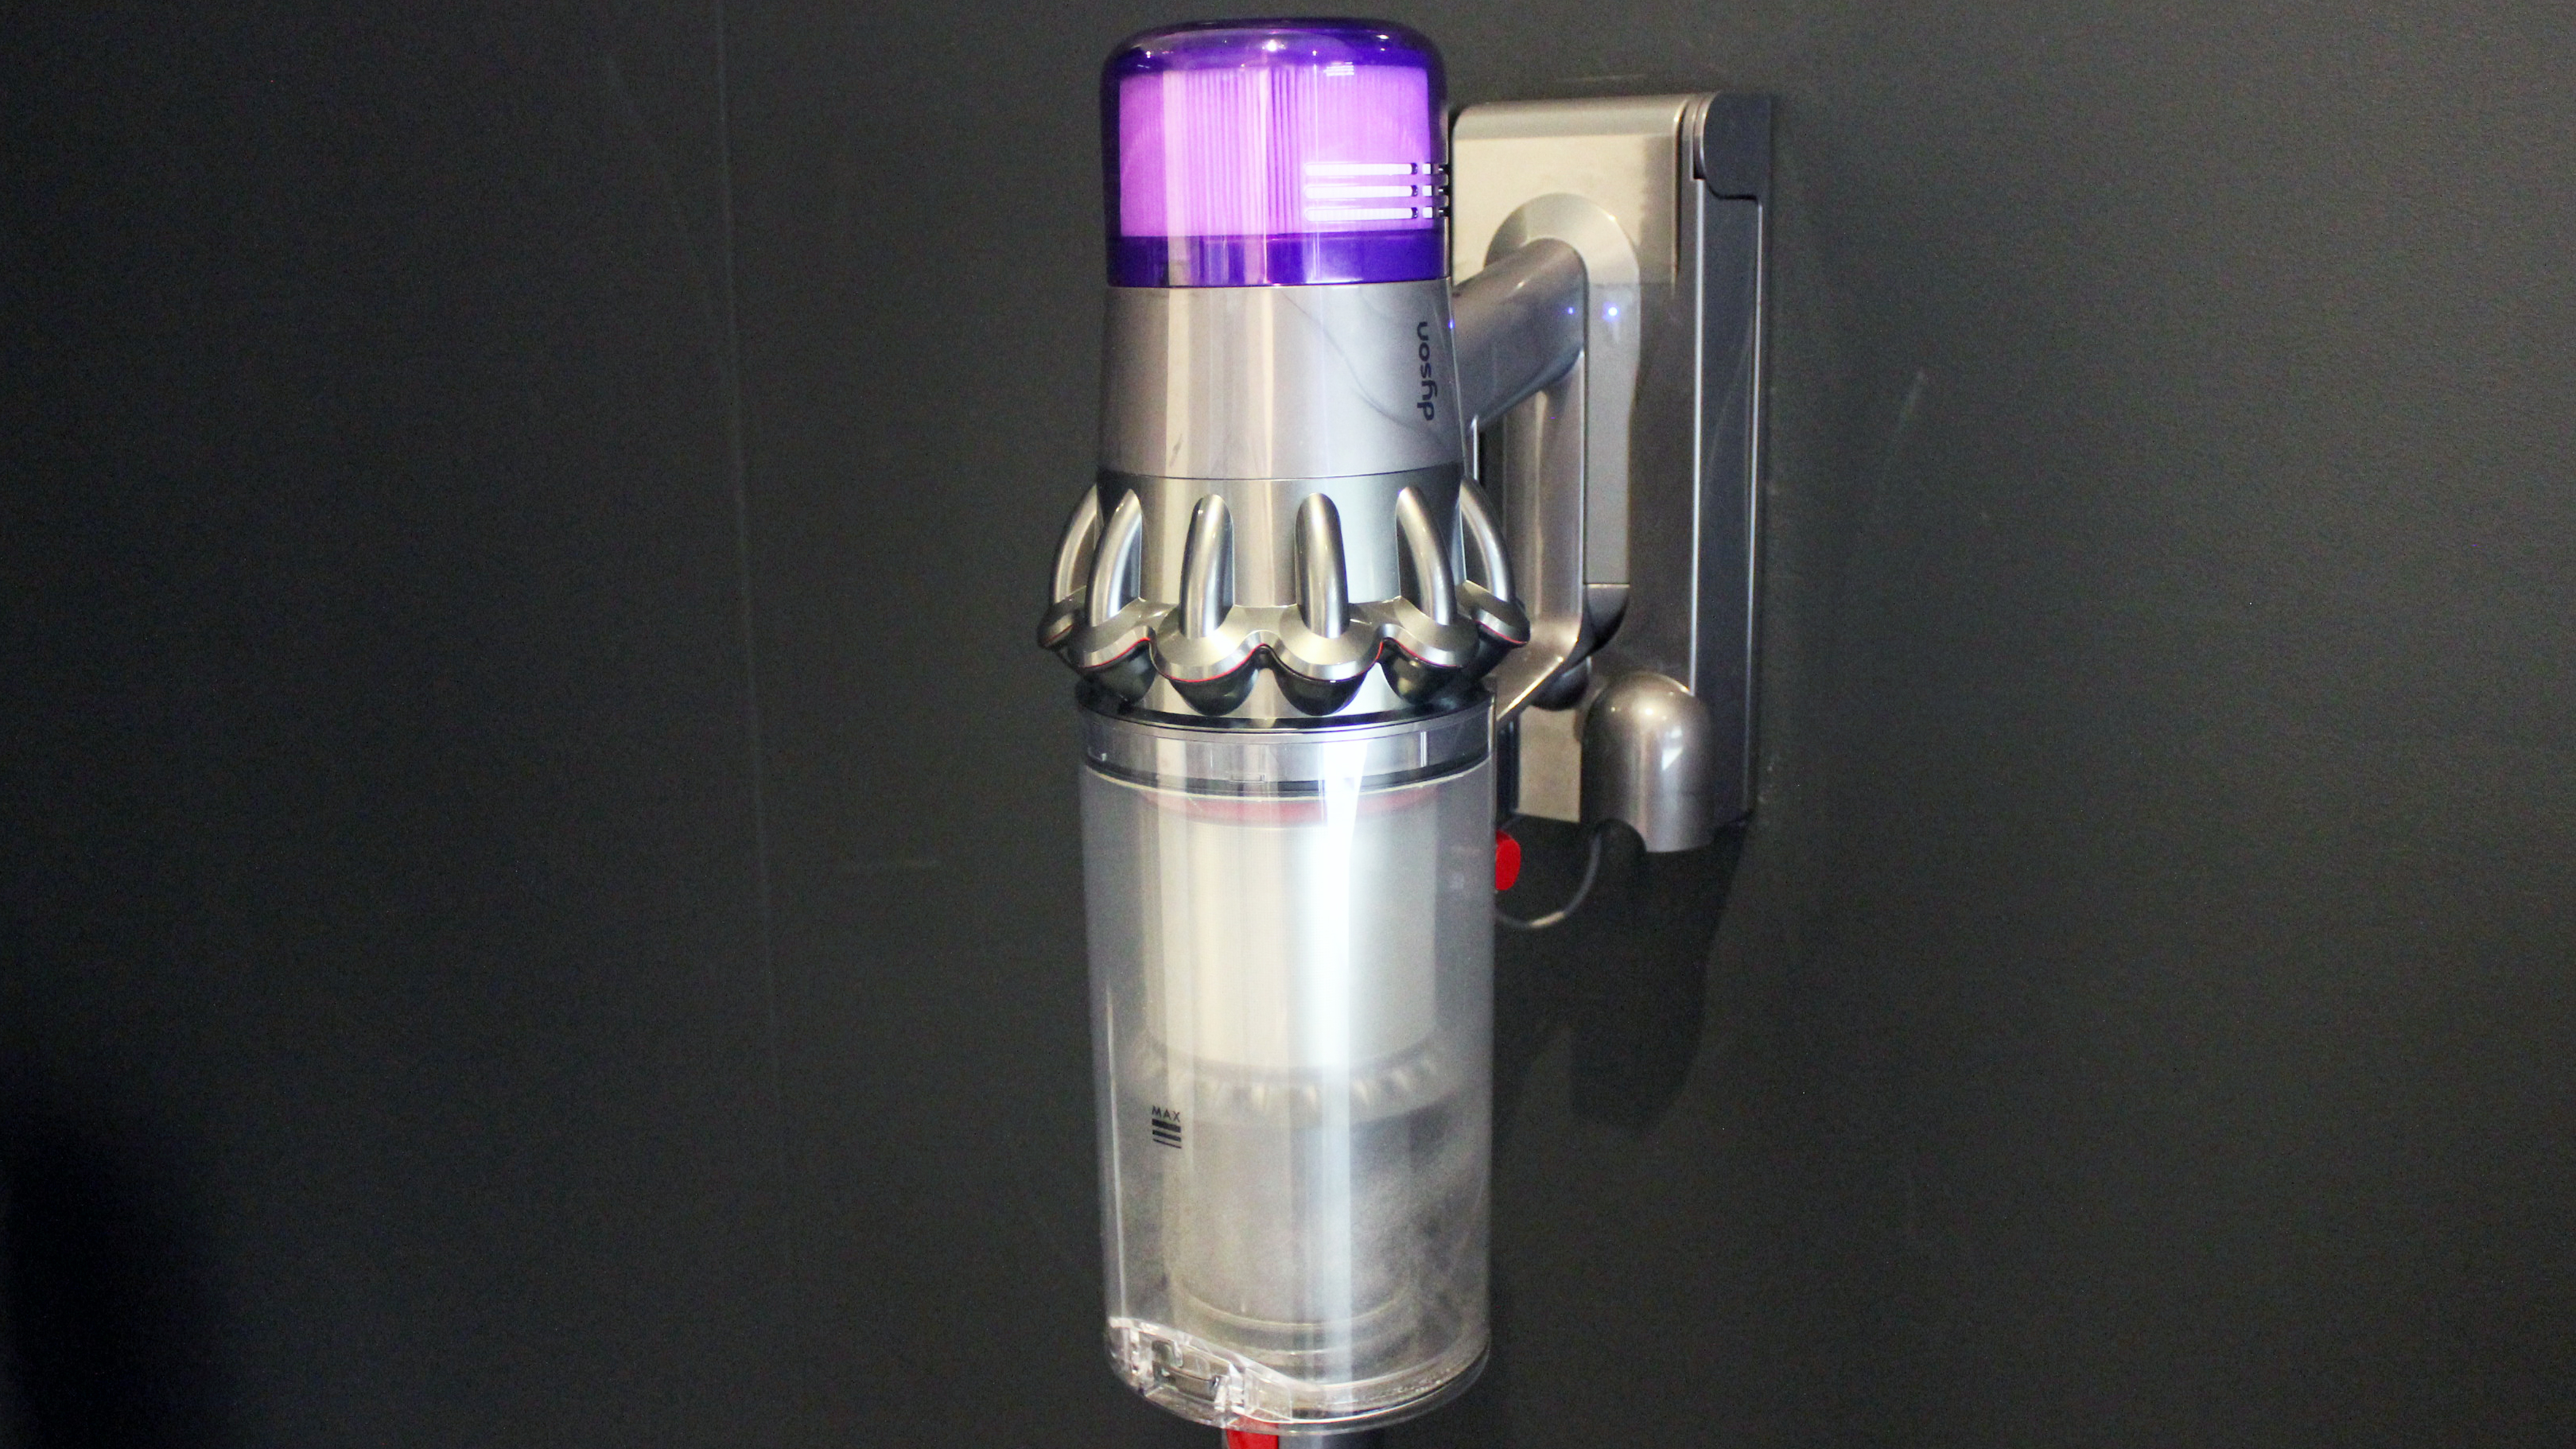 Hands on: Dyson V11 cordless vacuum review | TechRadar